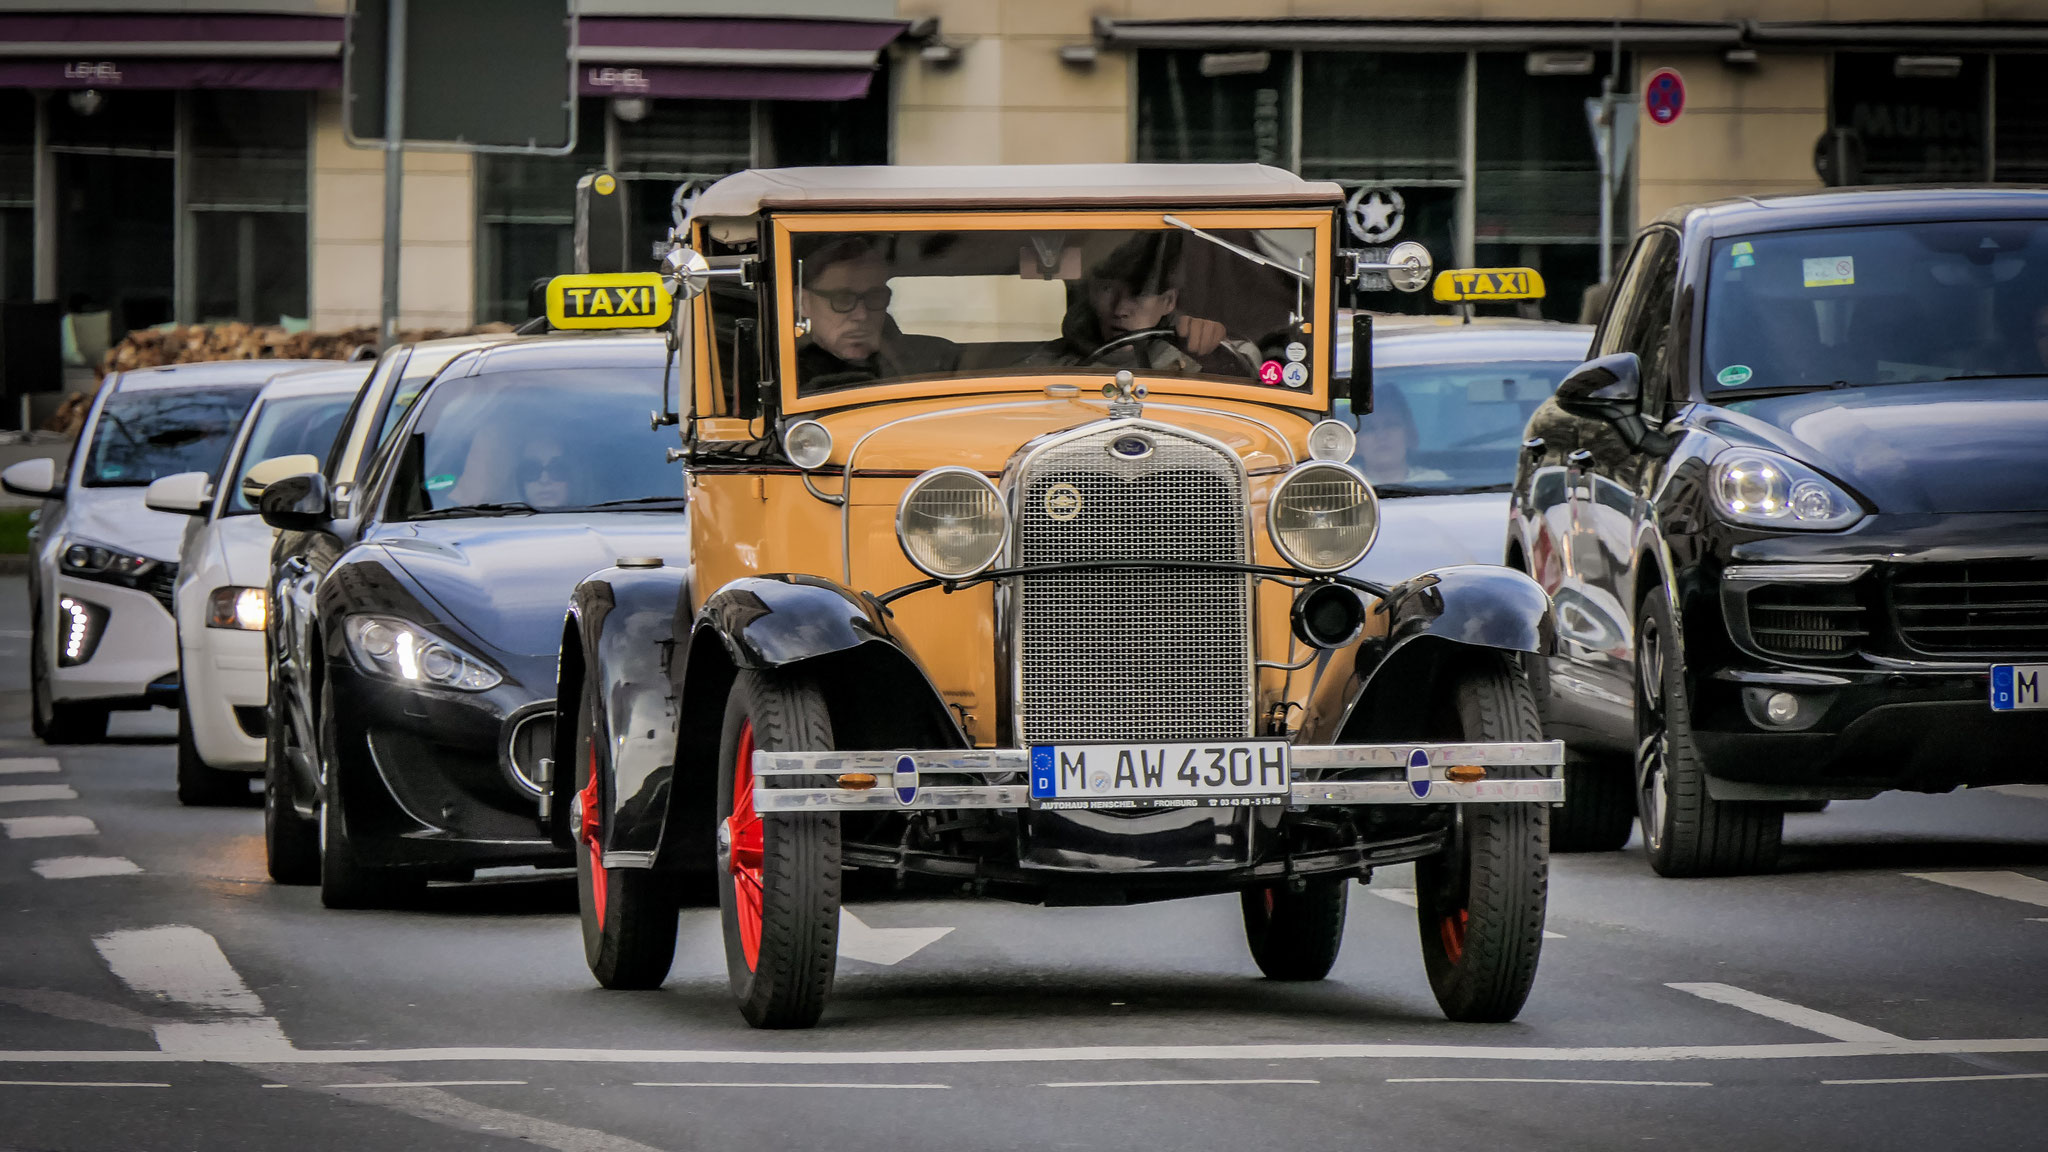 Ford Model A - M-AW-430H